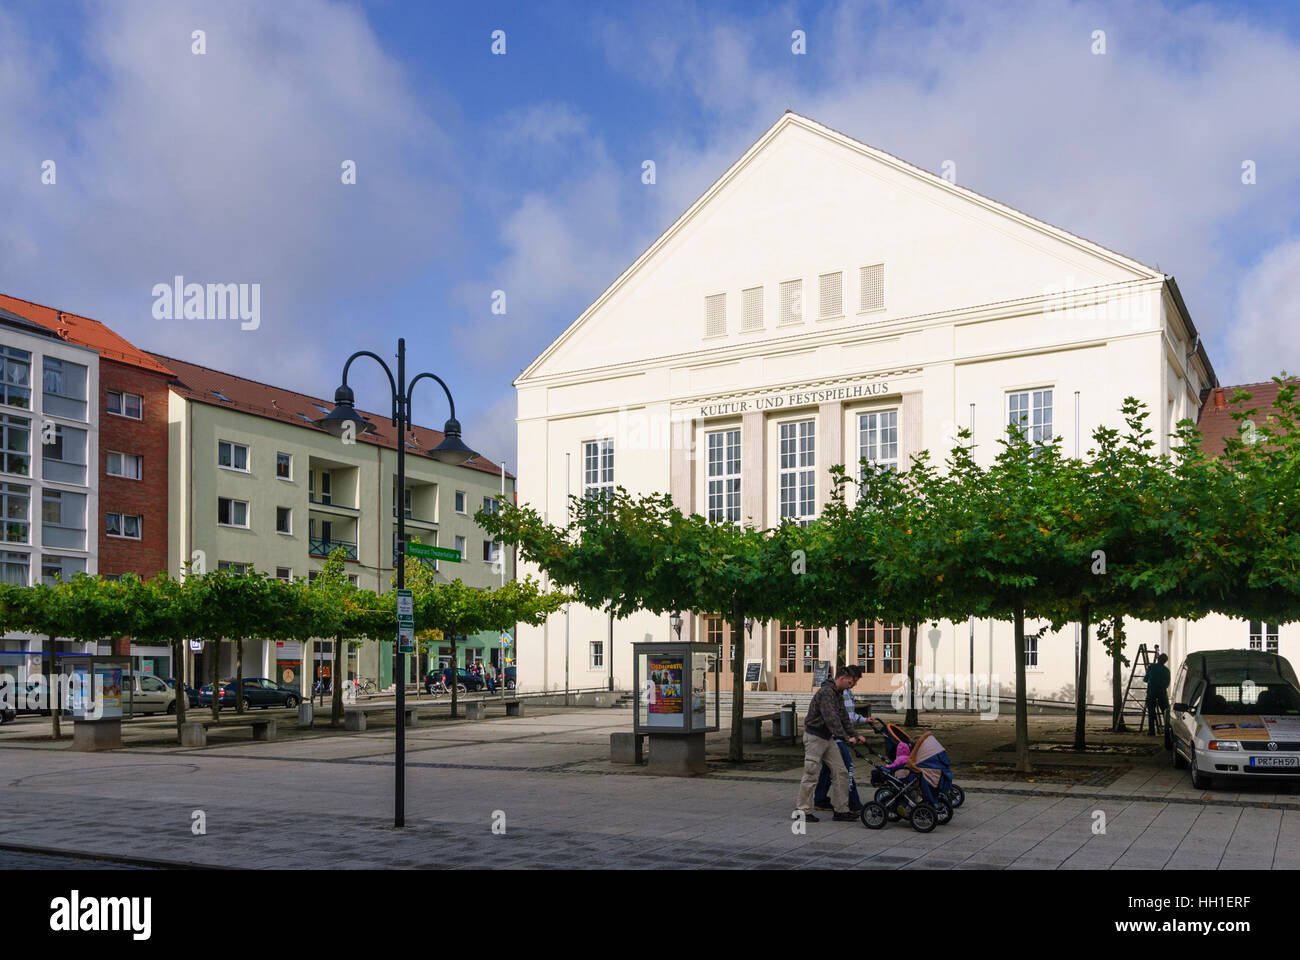 Wittenberge: Kultur- und Festspielhaus (culture and festival performance house), , Brandenburg, Germany - Stock Image